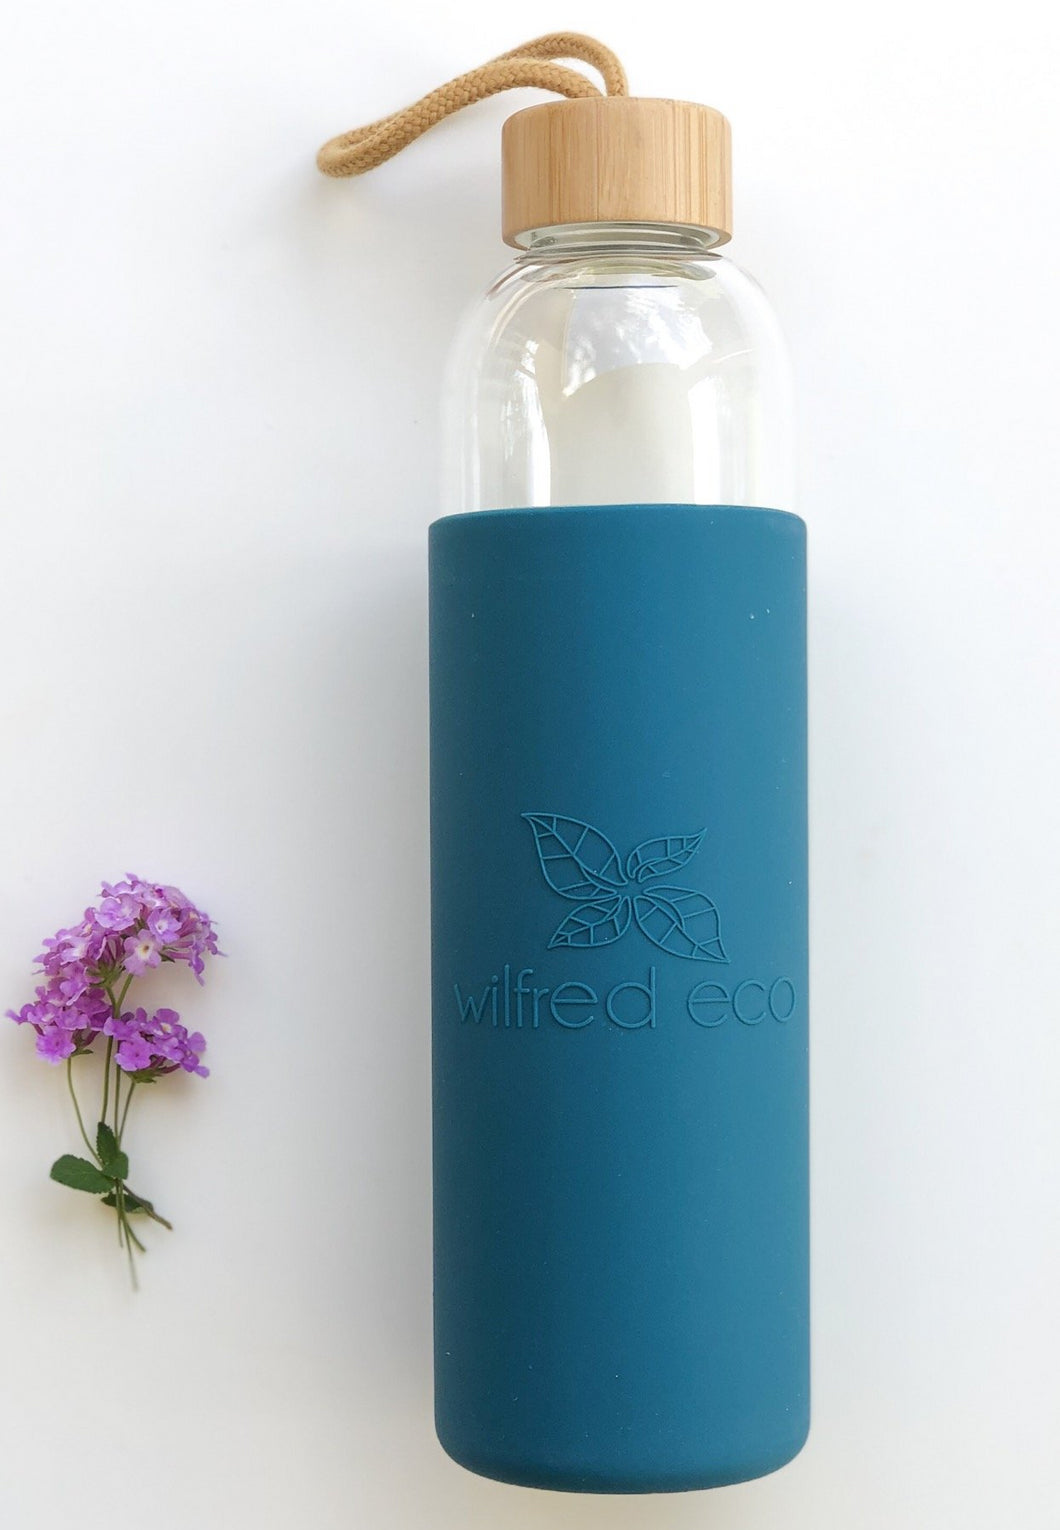 1L Glass Drinking Water Bottle Australia - Wilfred Eco